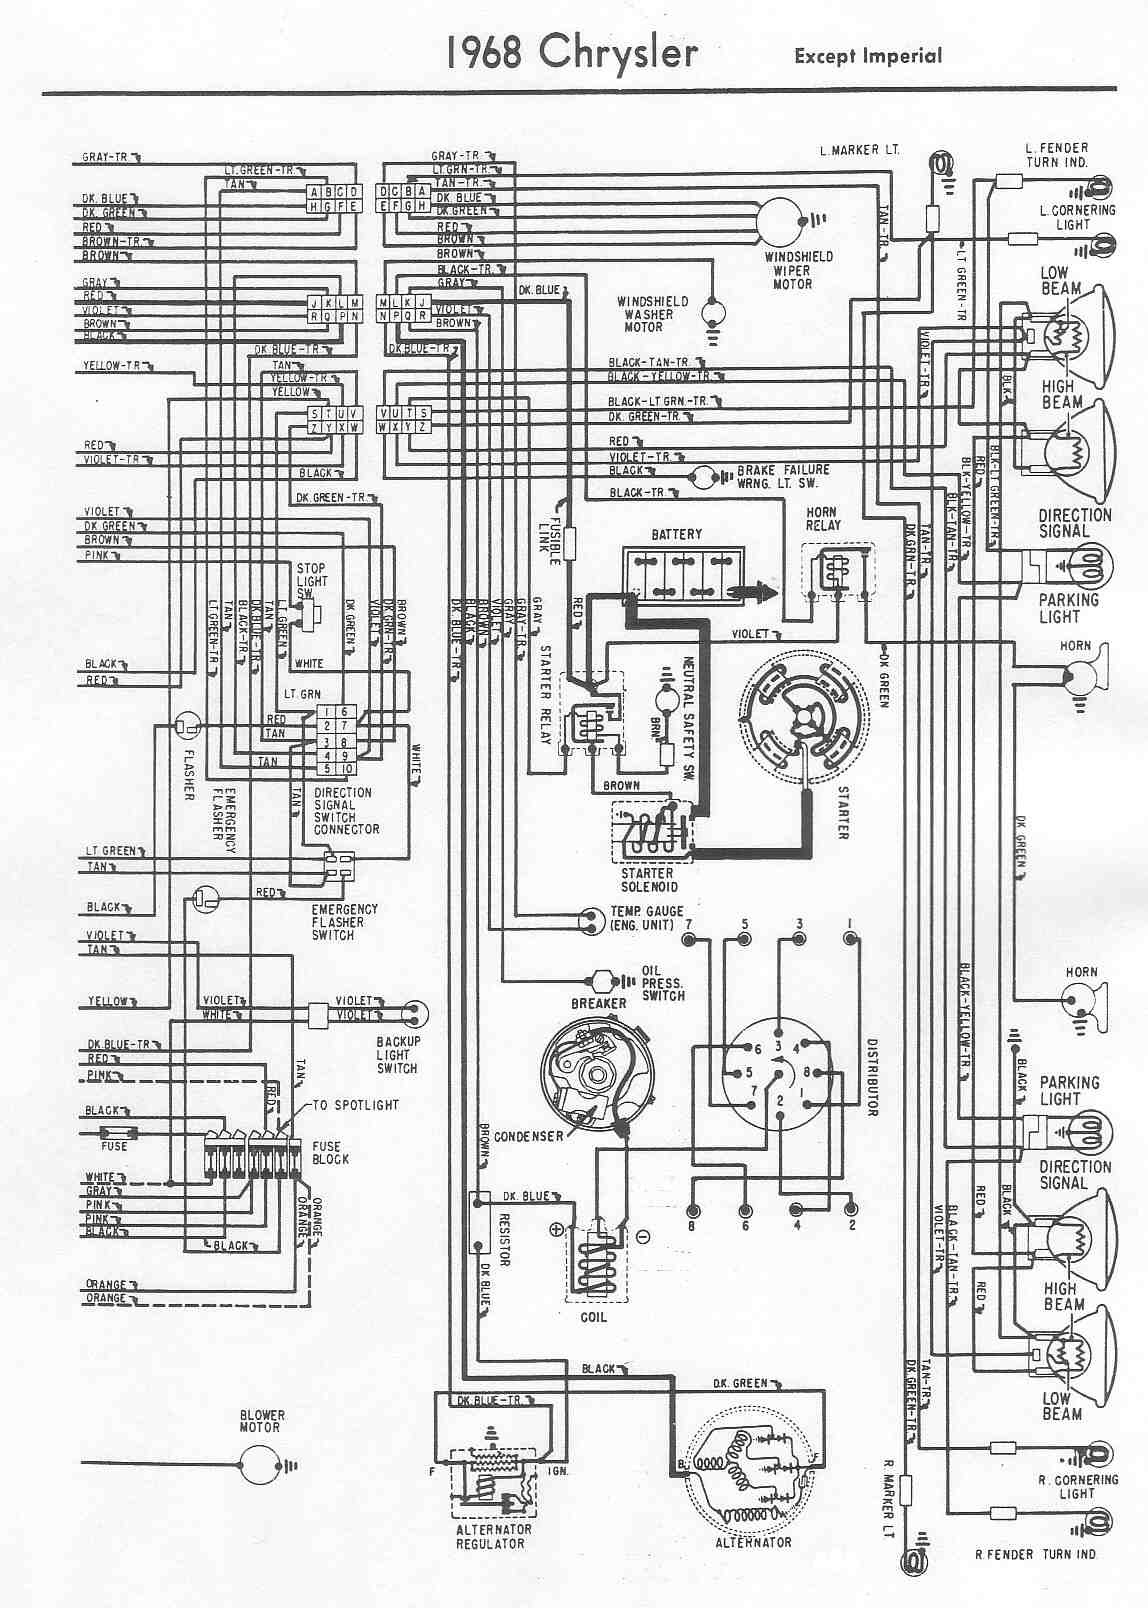 medium resolution of 1965 dodge coronet dash wiring diagram 1965 dodge coronet chrysler 300 wiring schematics automotive wiring symbols